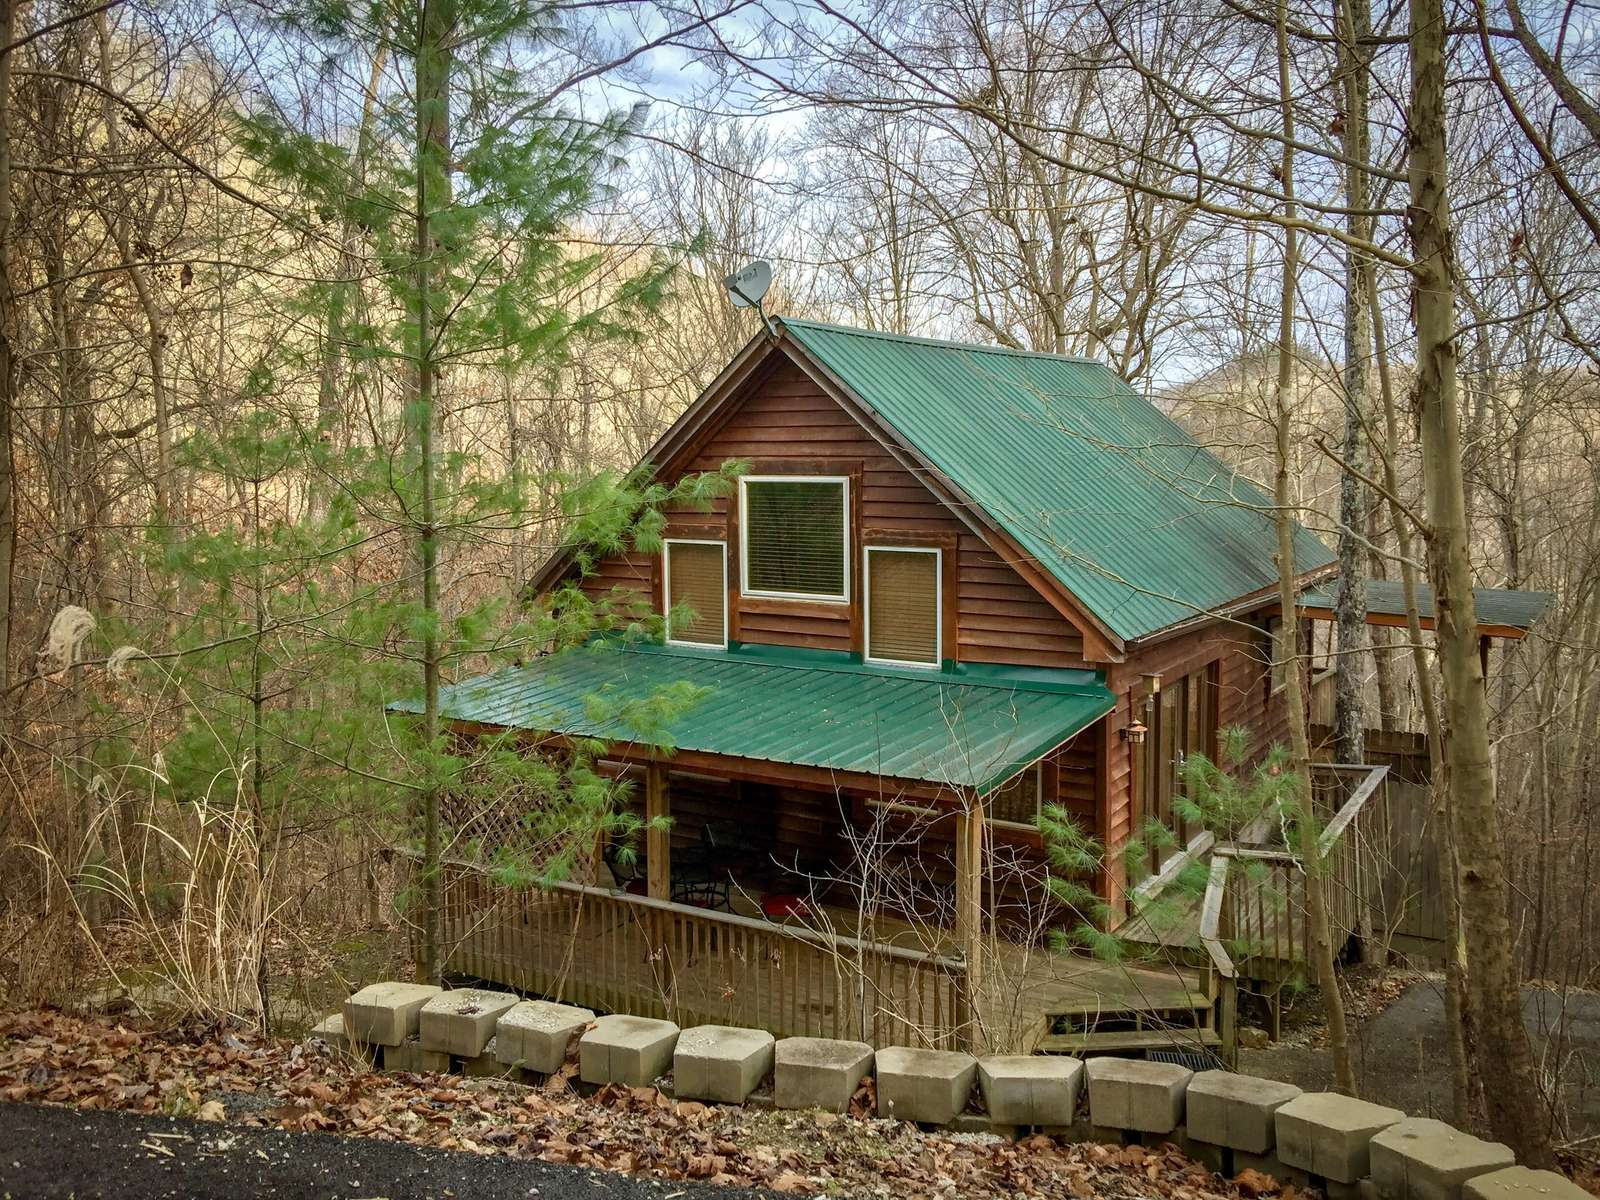 Vacation Rentals | Natural Bridge Cabin Rental